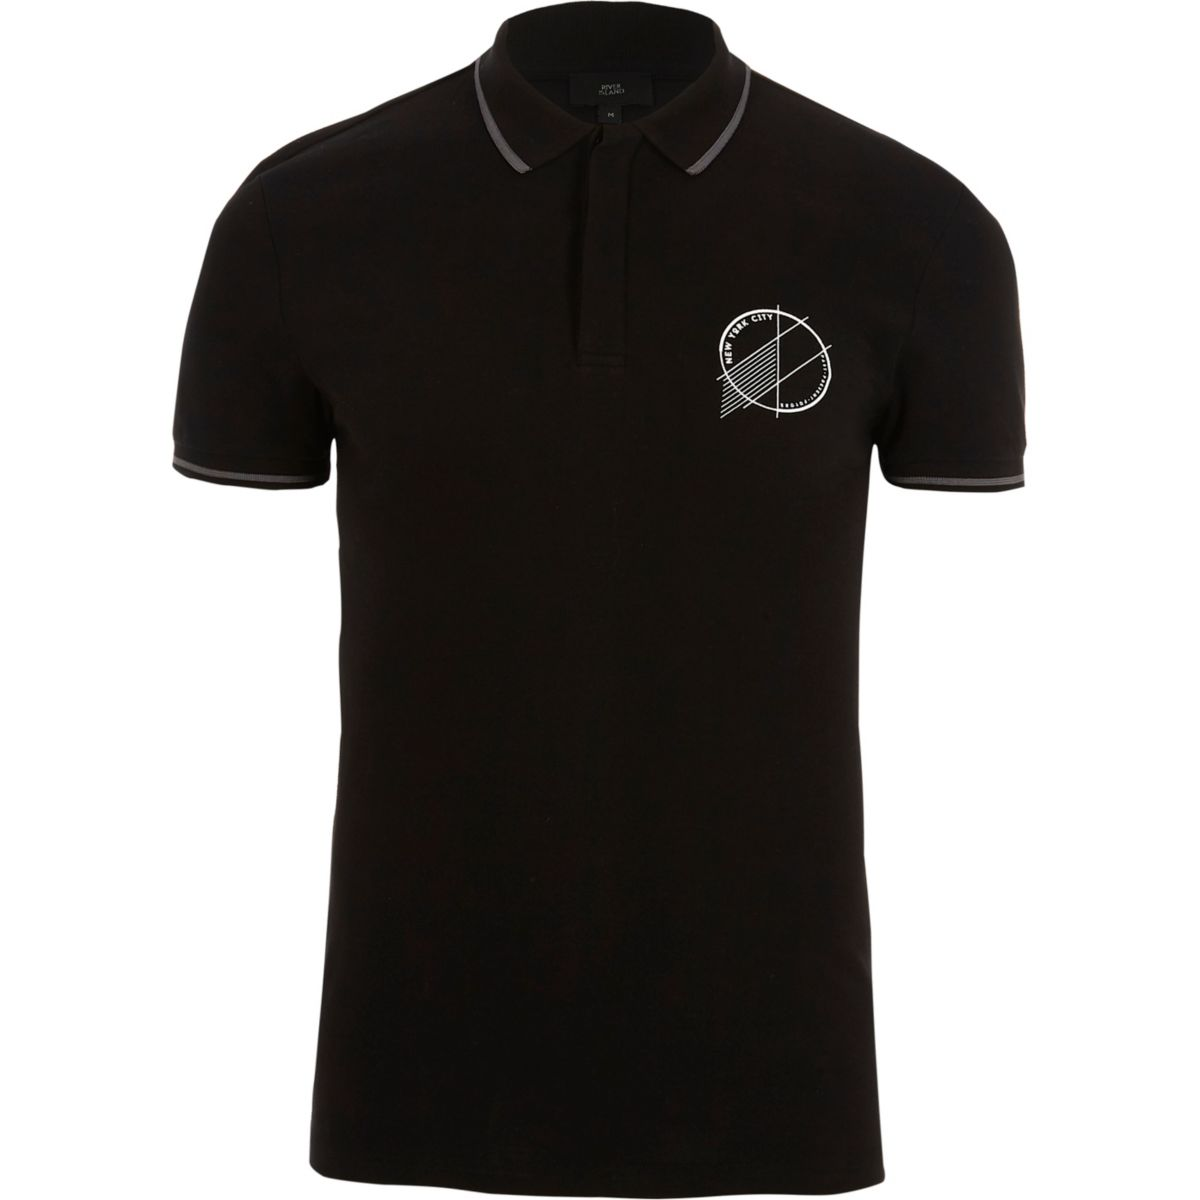 Black 'New York City' muscle fit polo shirt